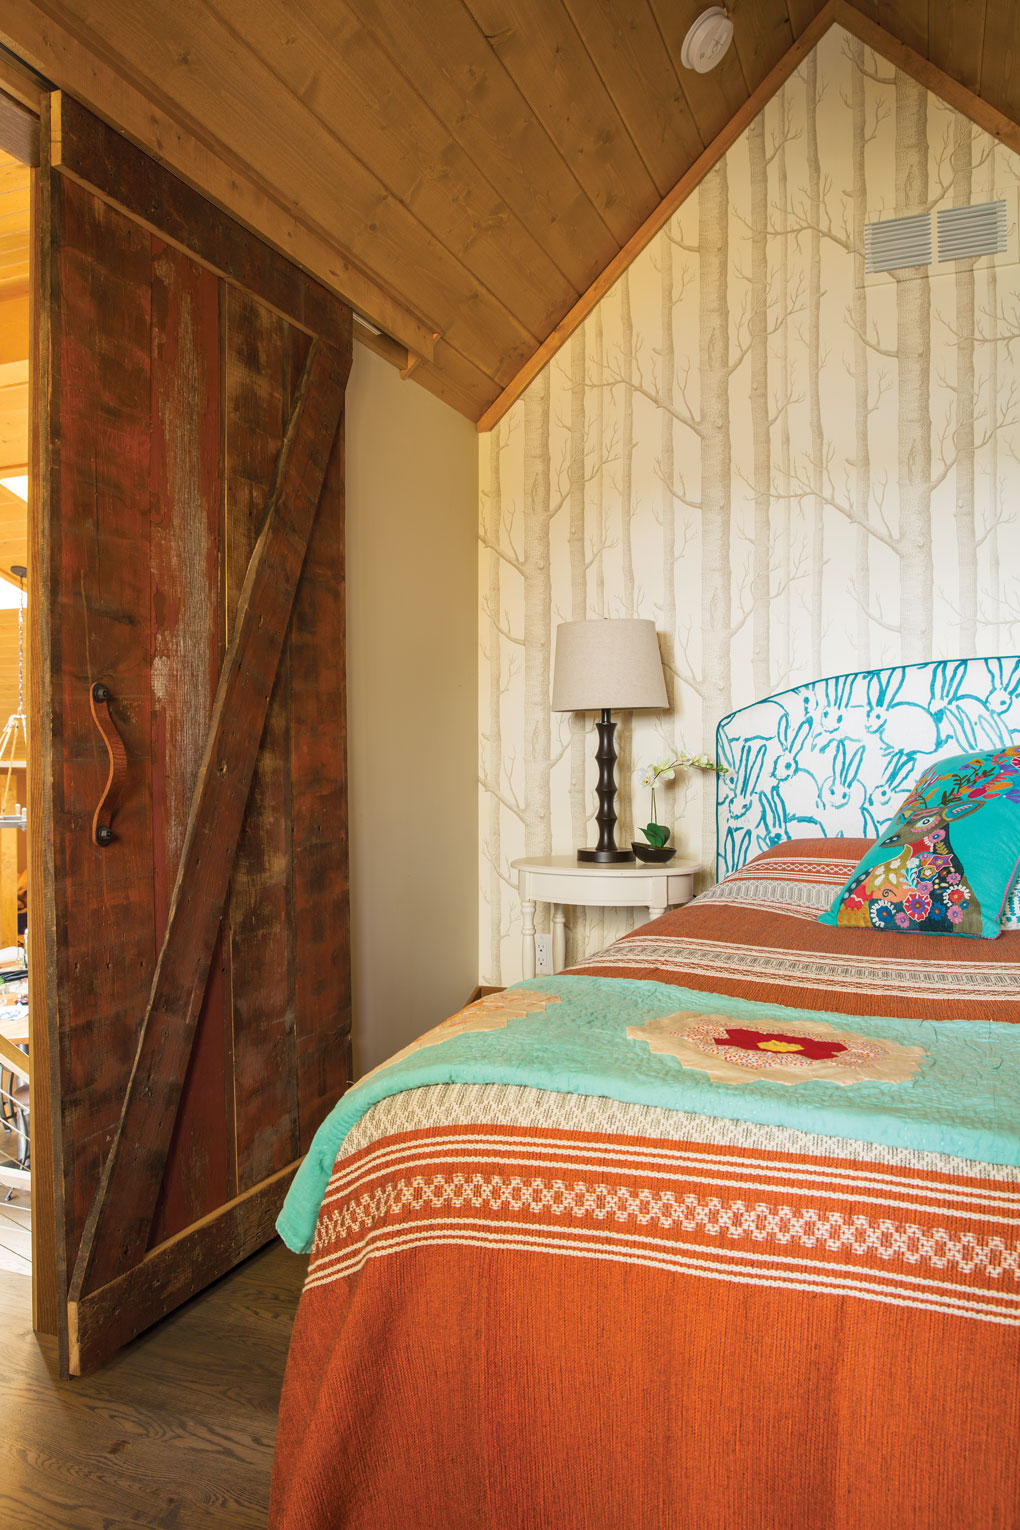 A loft bedroom featuring vintage items in a cabin in Luck, Wisconsin.